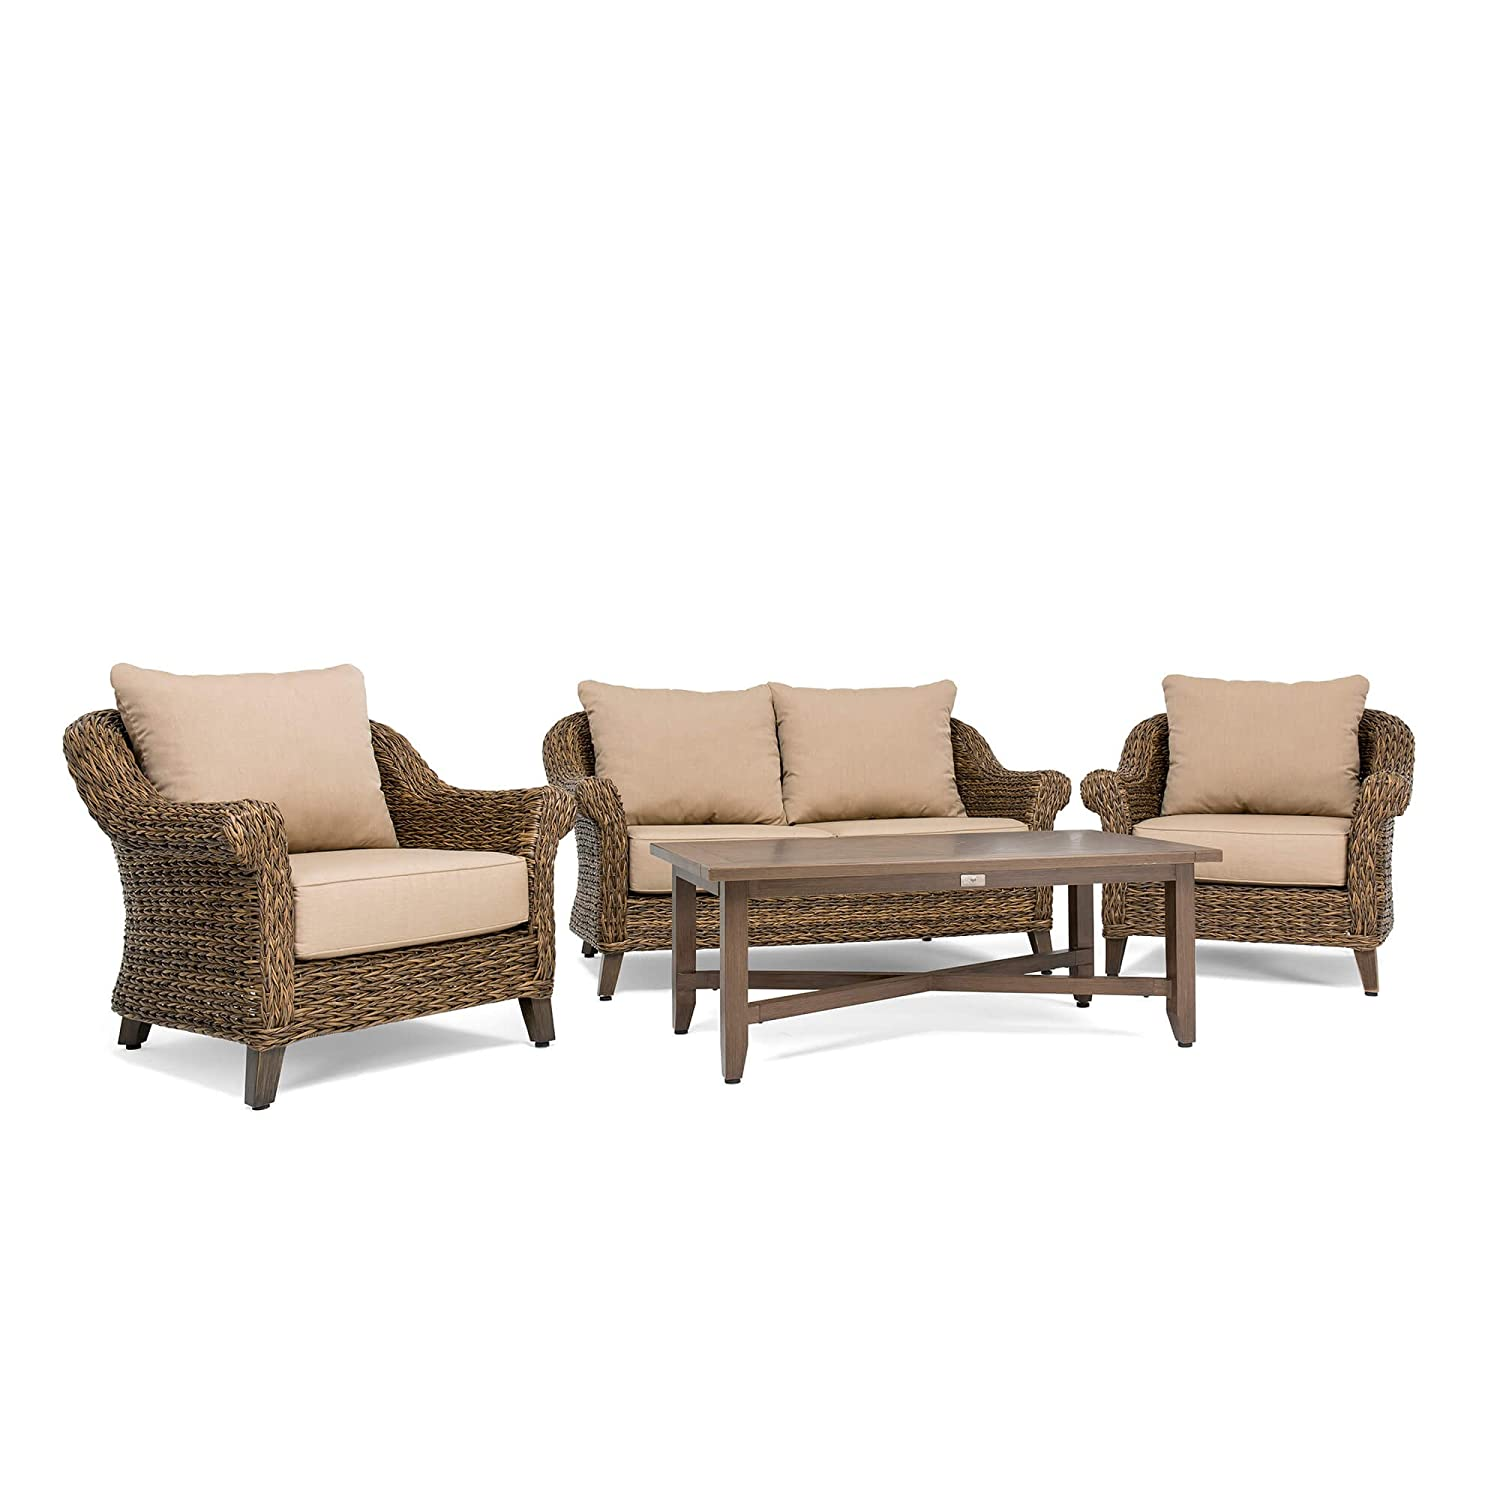 Amazon Blue Oak Outdoor Bahamas 4PC Patio Furniture